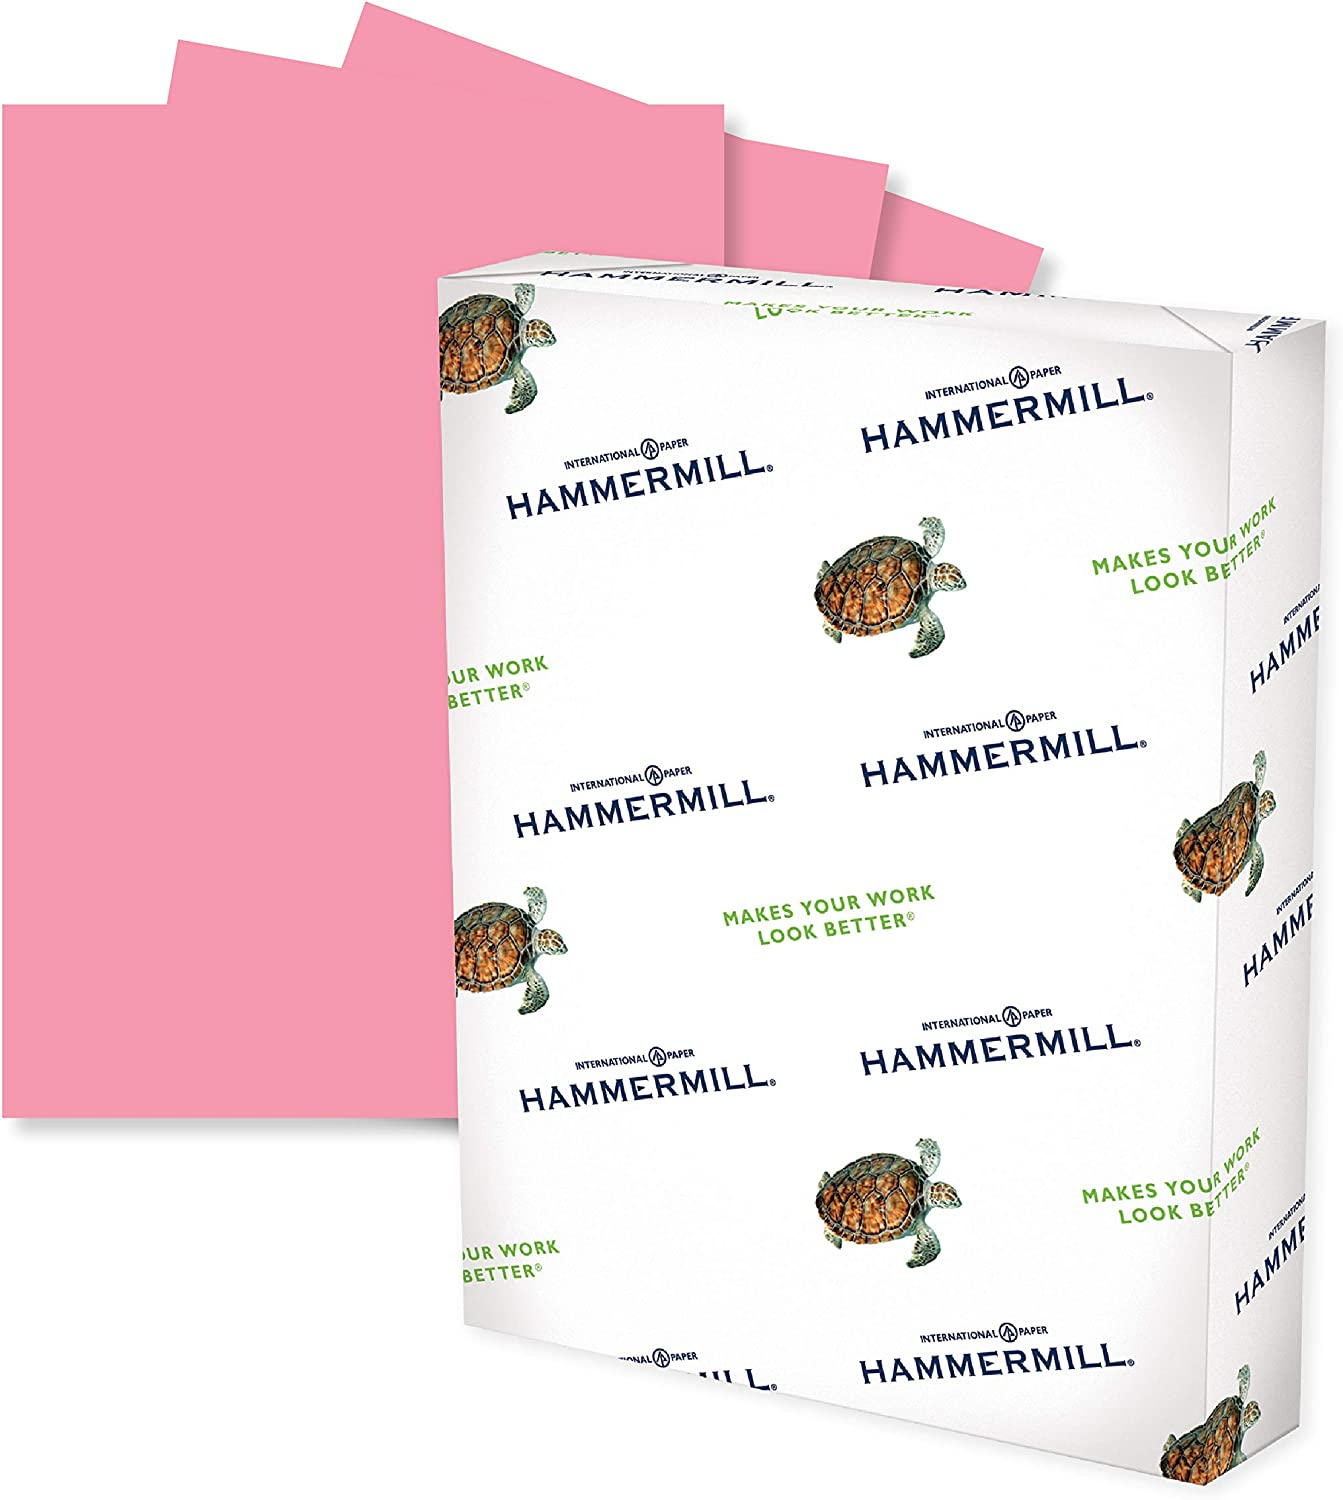 Hammermill Colored Paper, 20 lb Tan Printer Paper, 8.5 x 11-10 Ream (5,000 Sheets) - Made in the USA, Pastel Paper, 102863C : Multipurpose Paper : Office Products